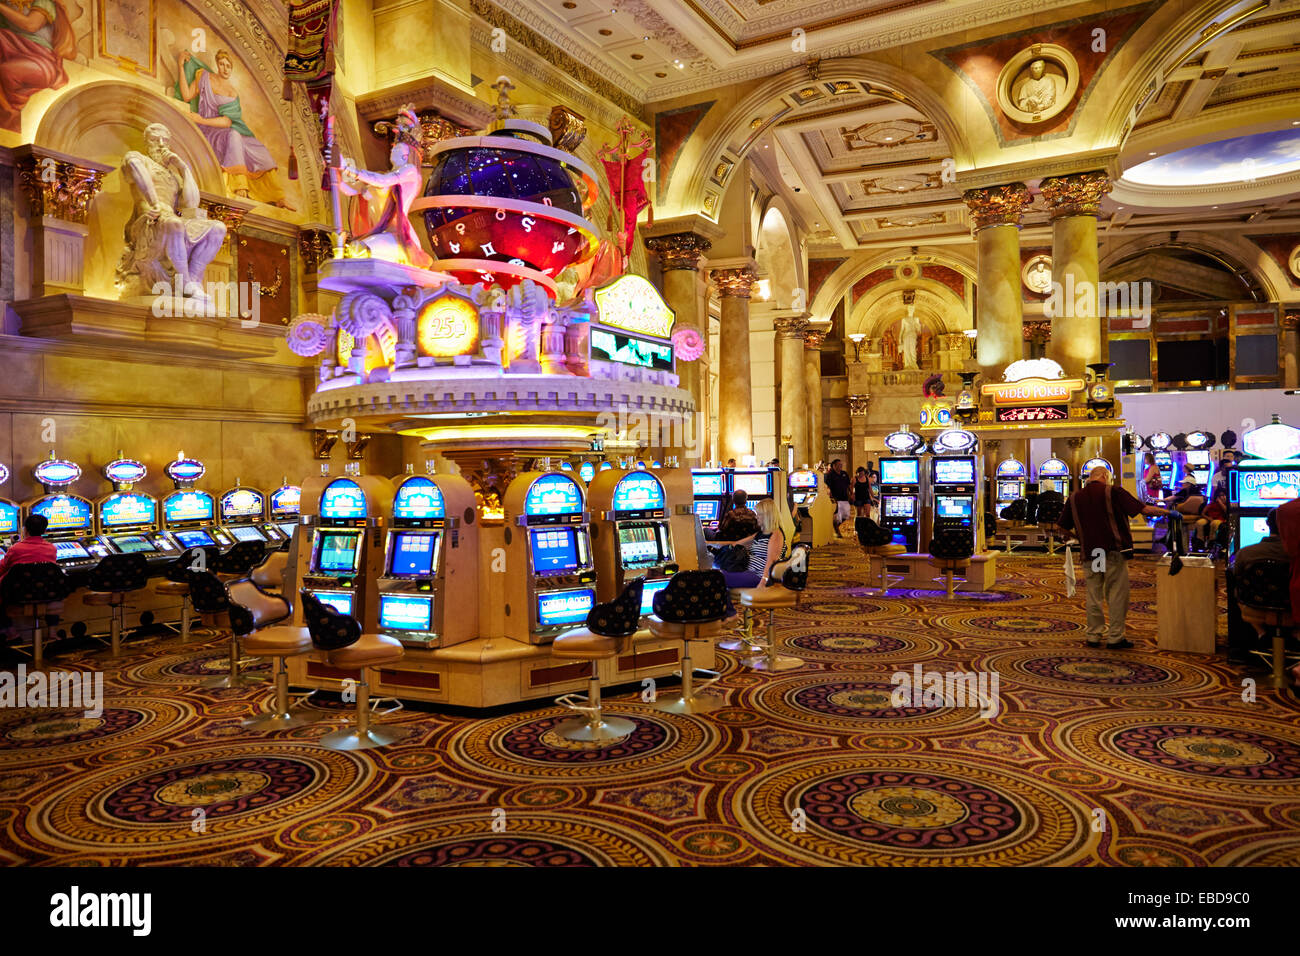 caesars palace slot machines